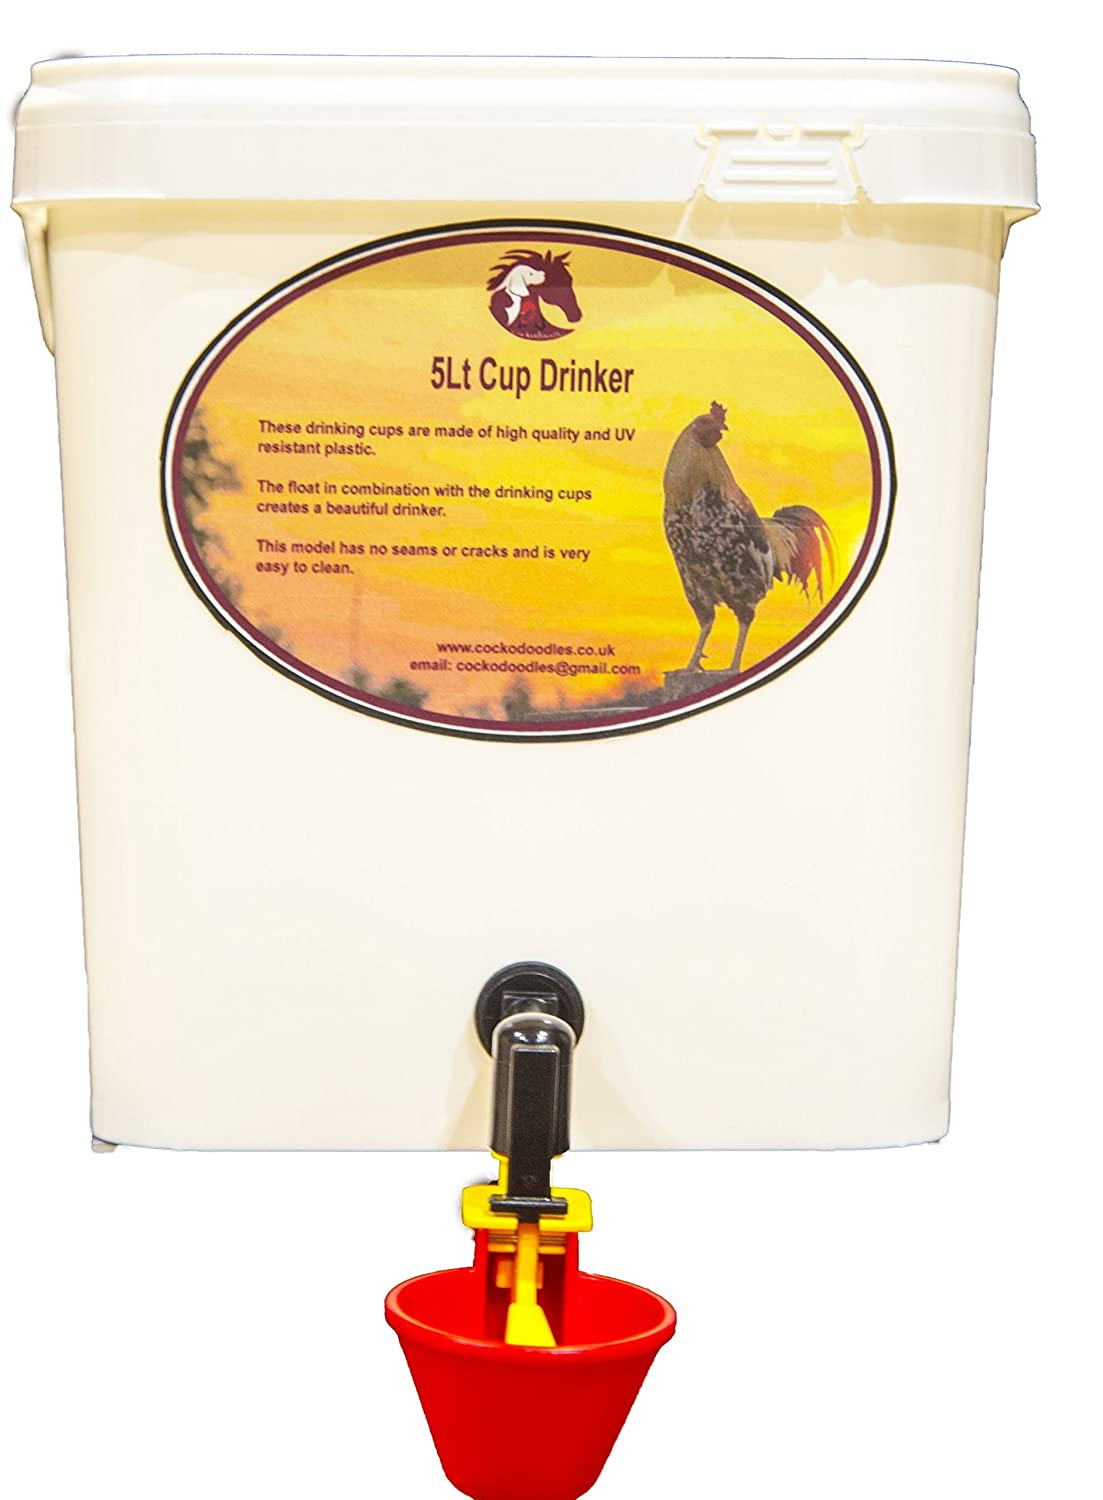 5LT CUP DRINKER FOR CHICKENS - POULTRY Cockodoodles